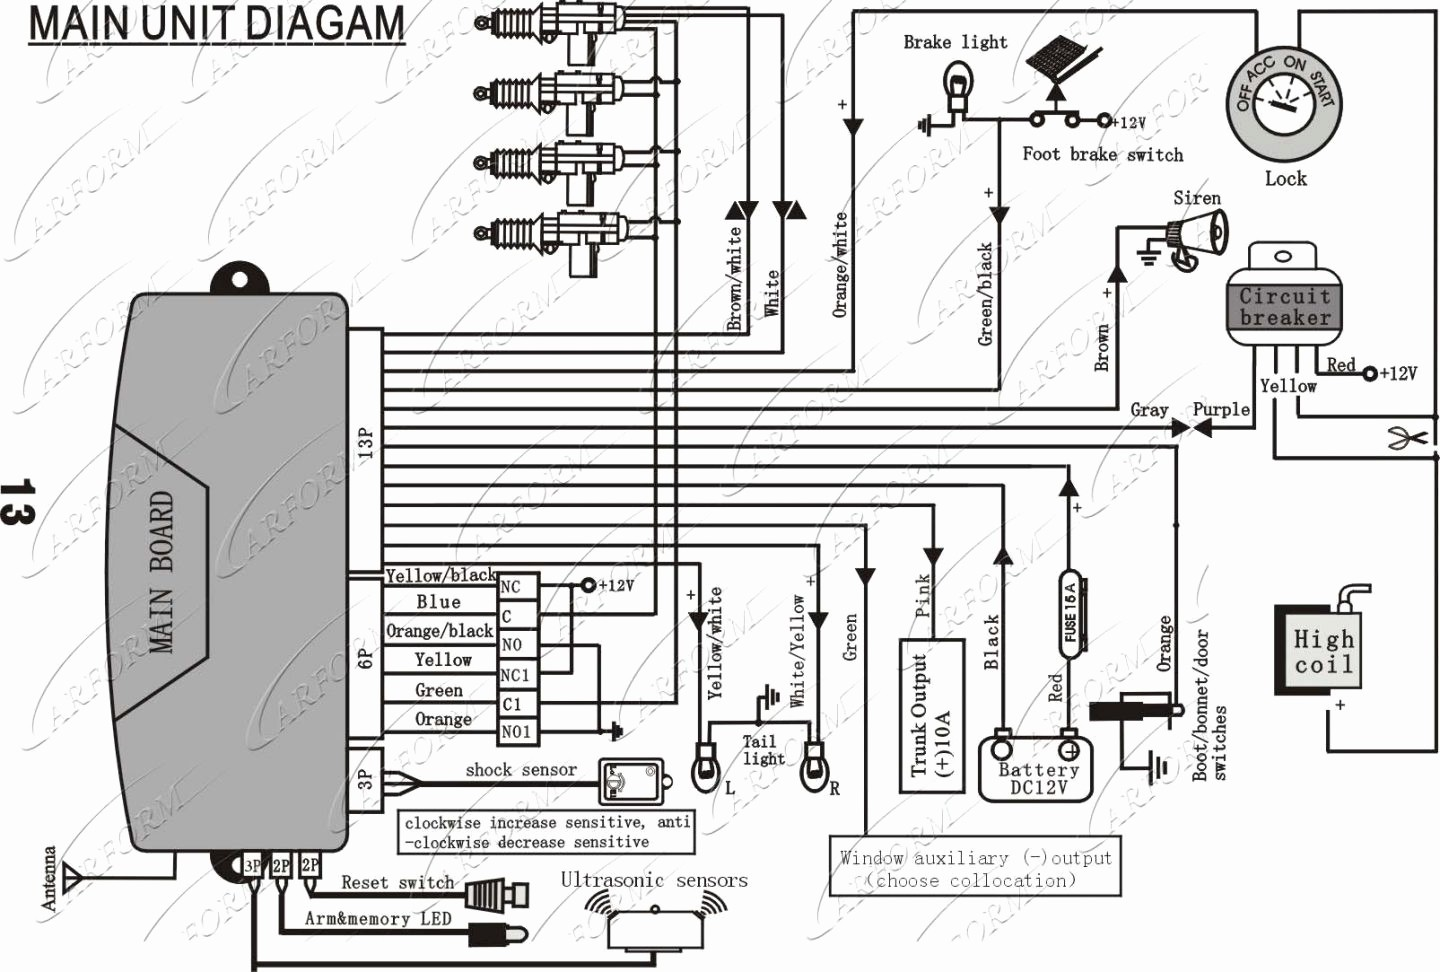 Viper 5806v Wiring Diagram Inspirational | Wiring Diagram Image